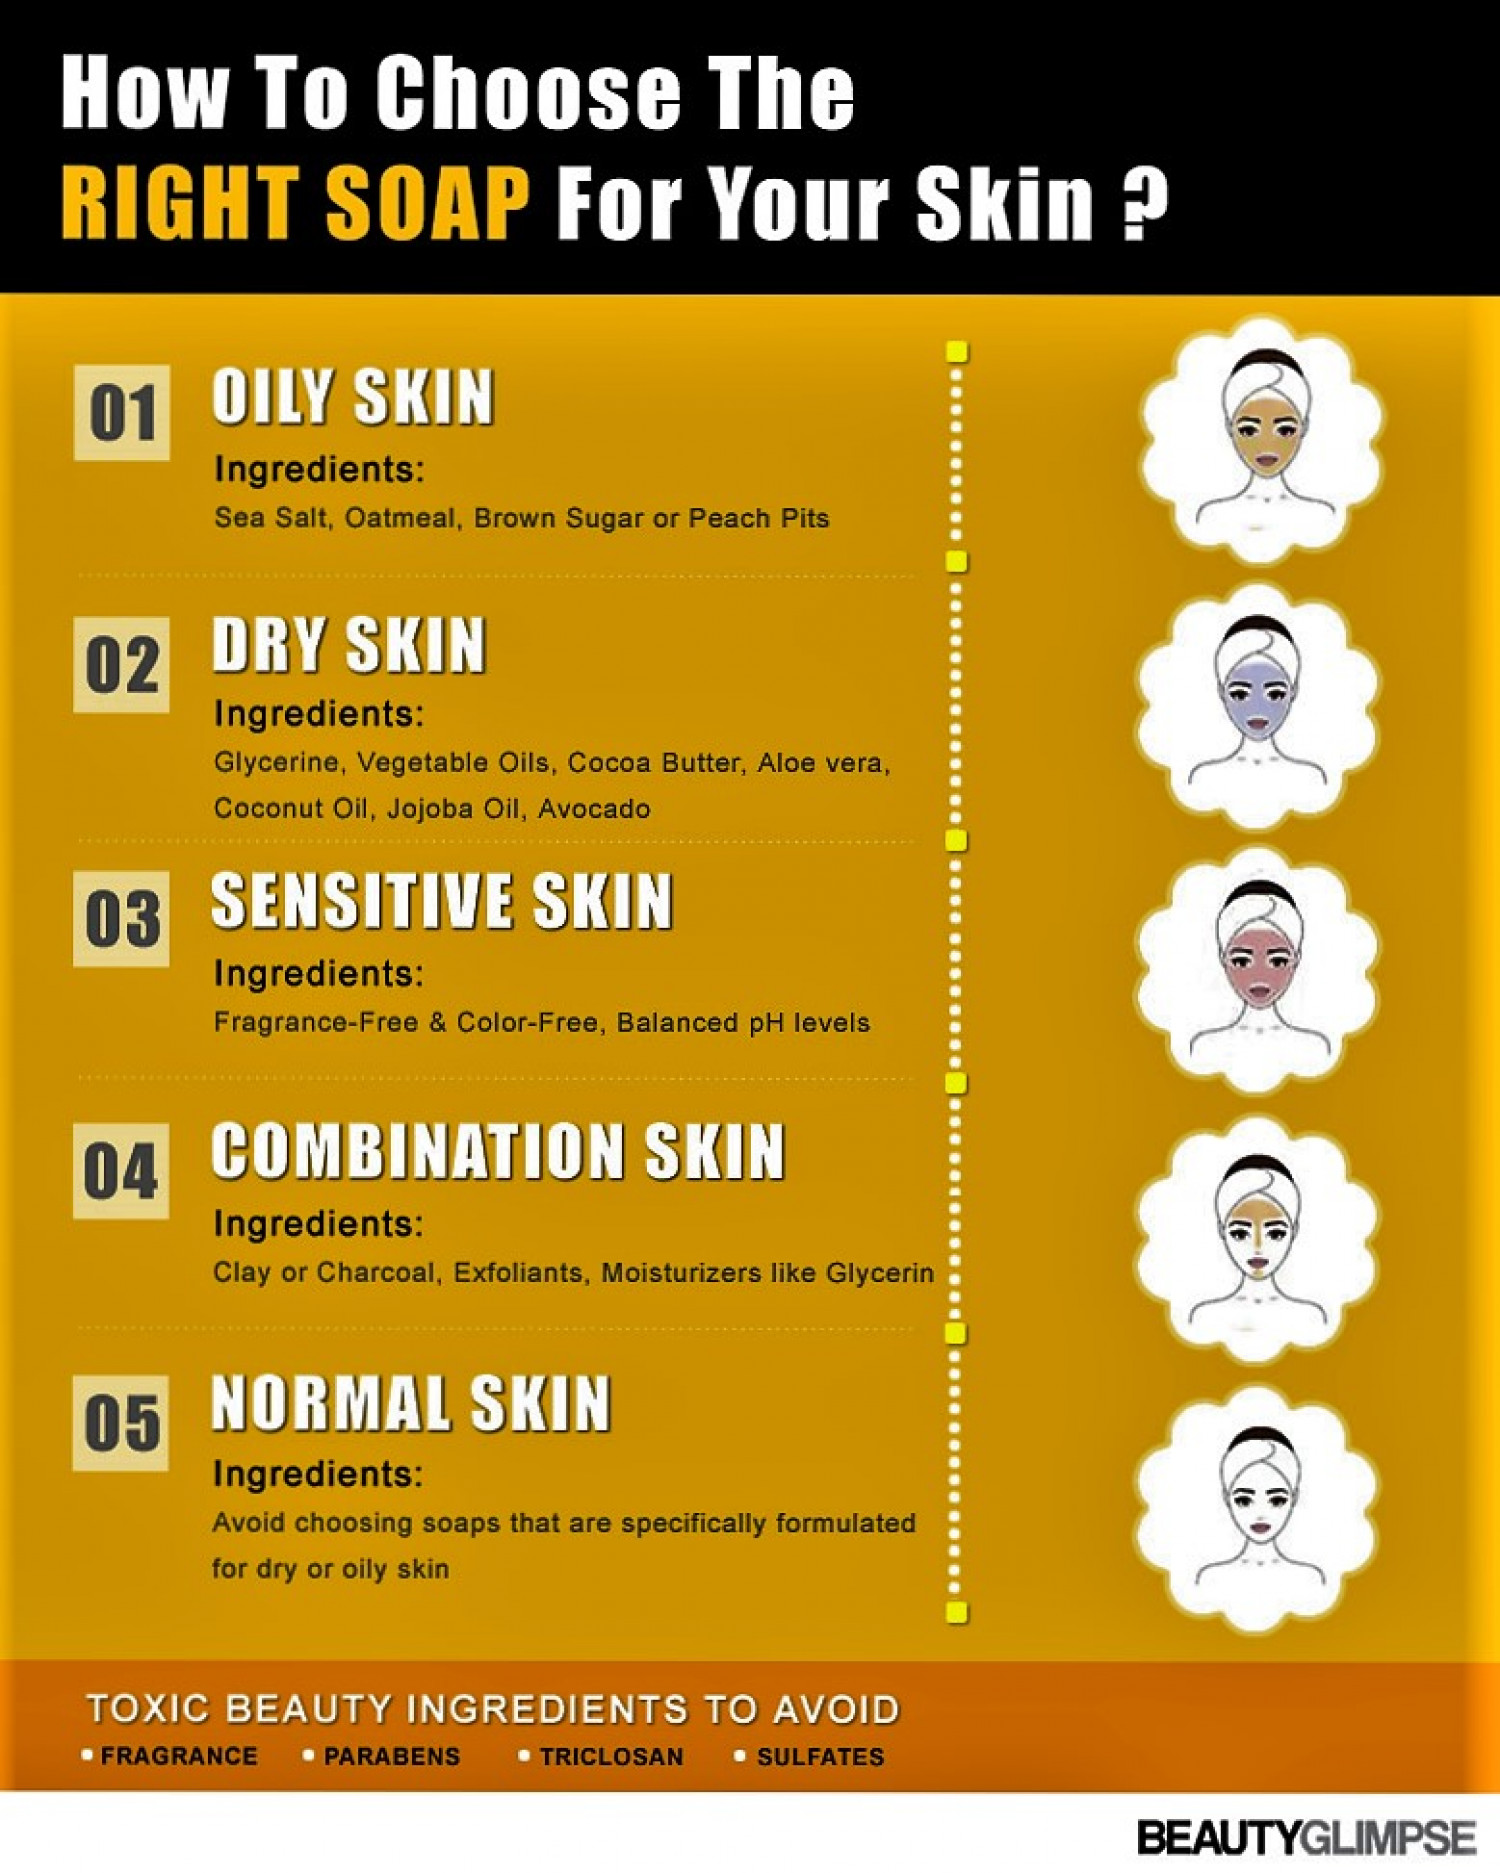 How to Choose the Right Soap for Your Skin Infographic